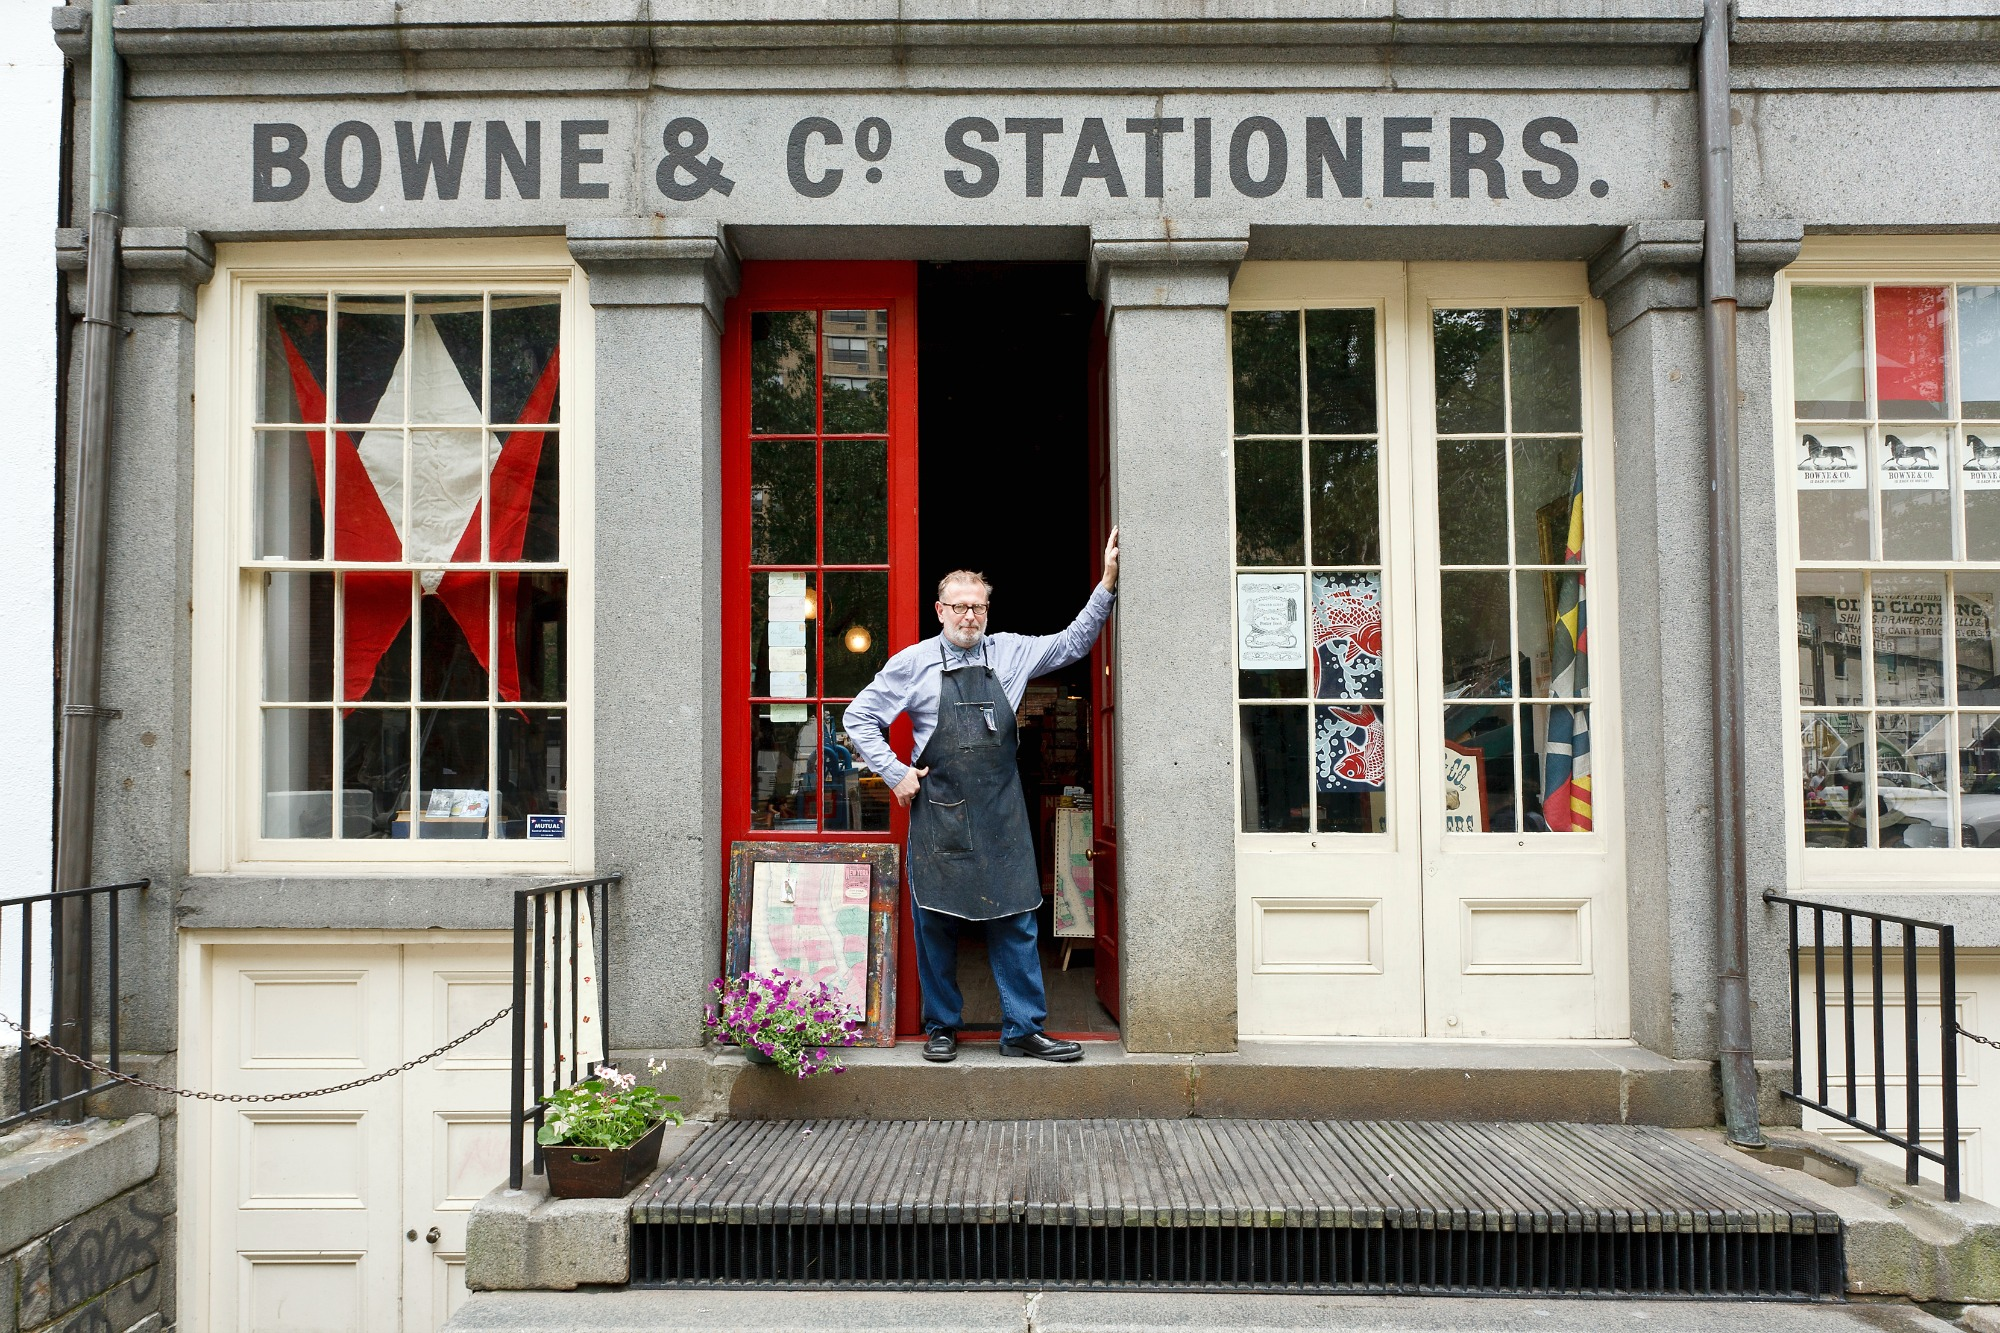 Bowne & Co. Stationers, South Street Seaport Museum, South Street Seaport Historic District